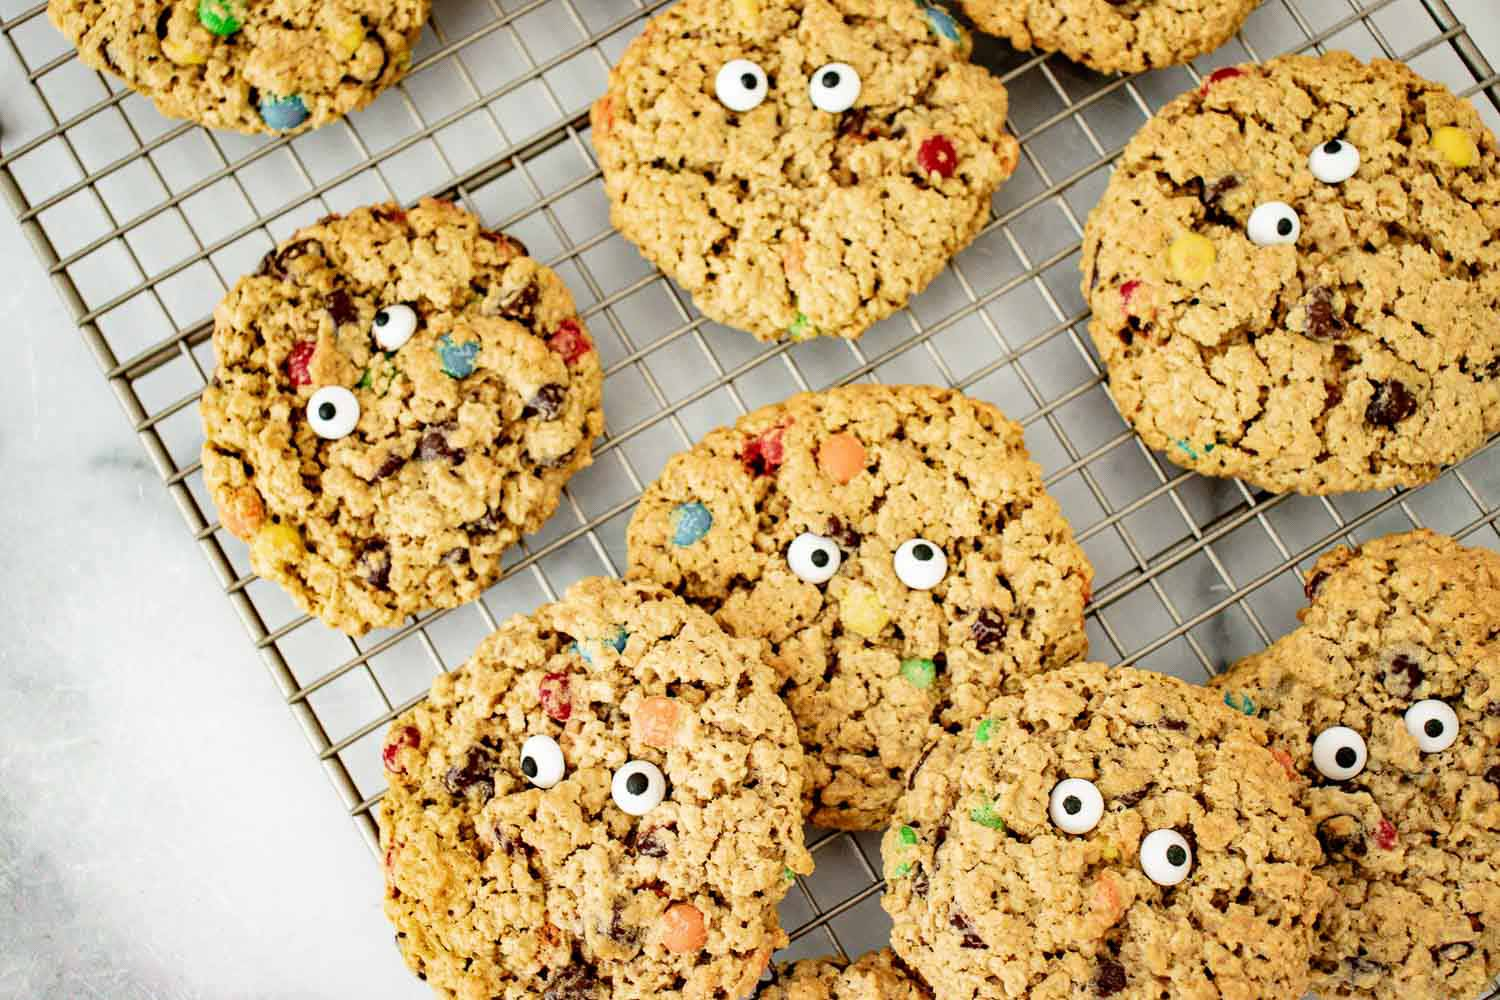 Baked monster cookies with eyes on them sitting on a wire rack.